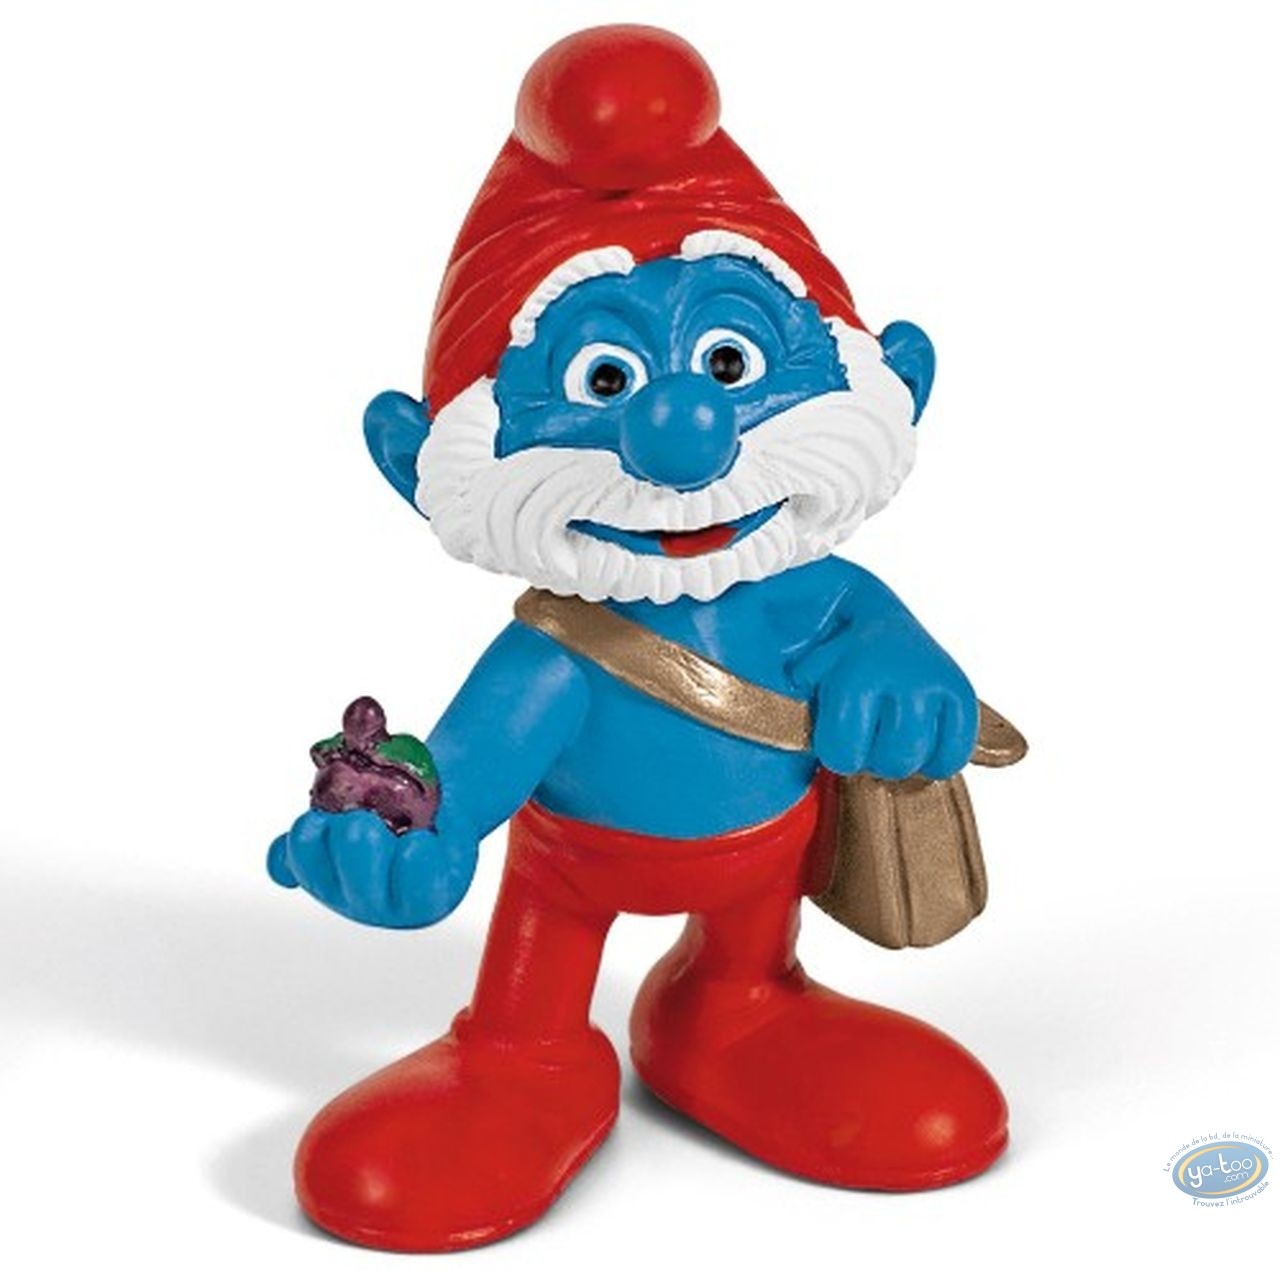 Plastic Figurine, Smurfs (The) : Papa Smurf (movie version)